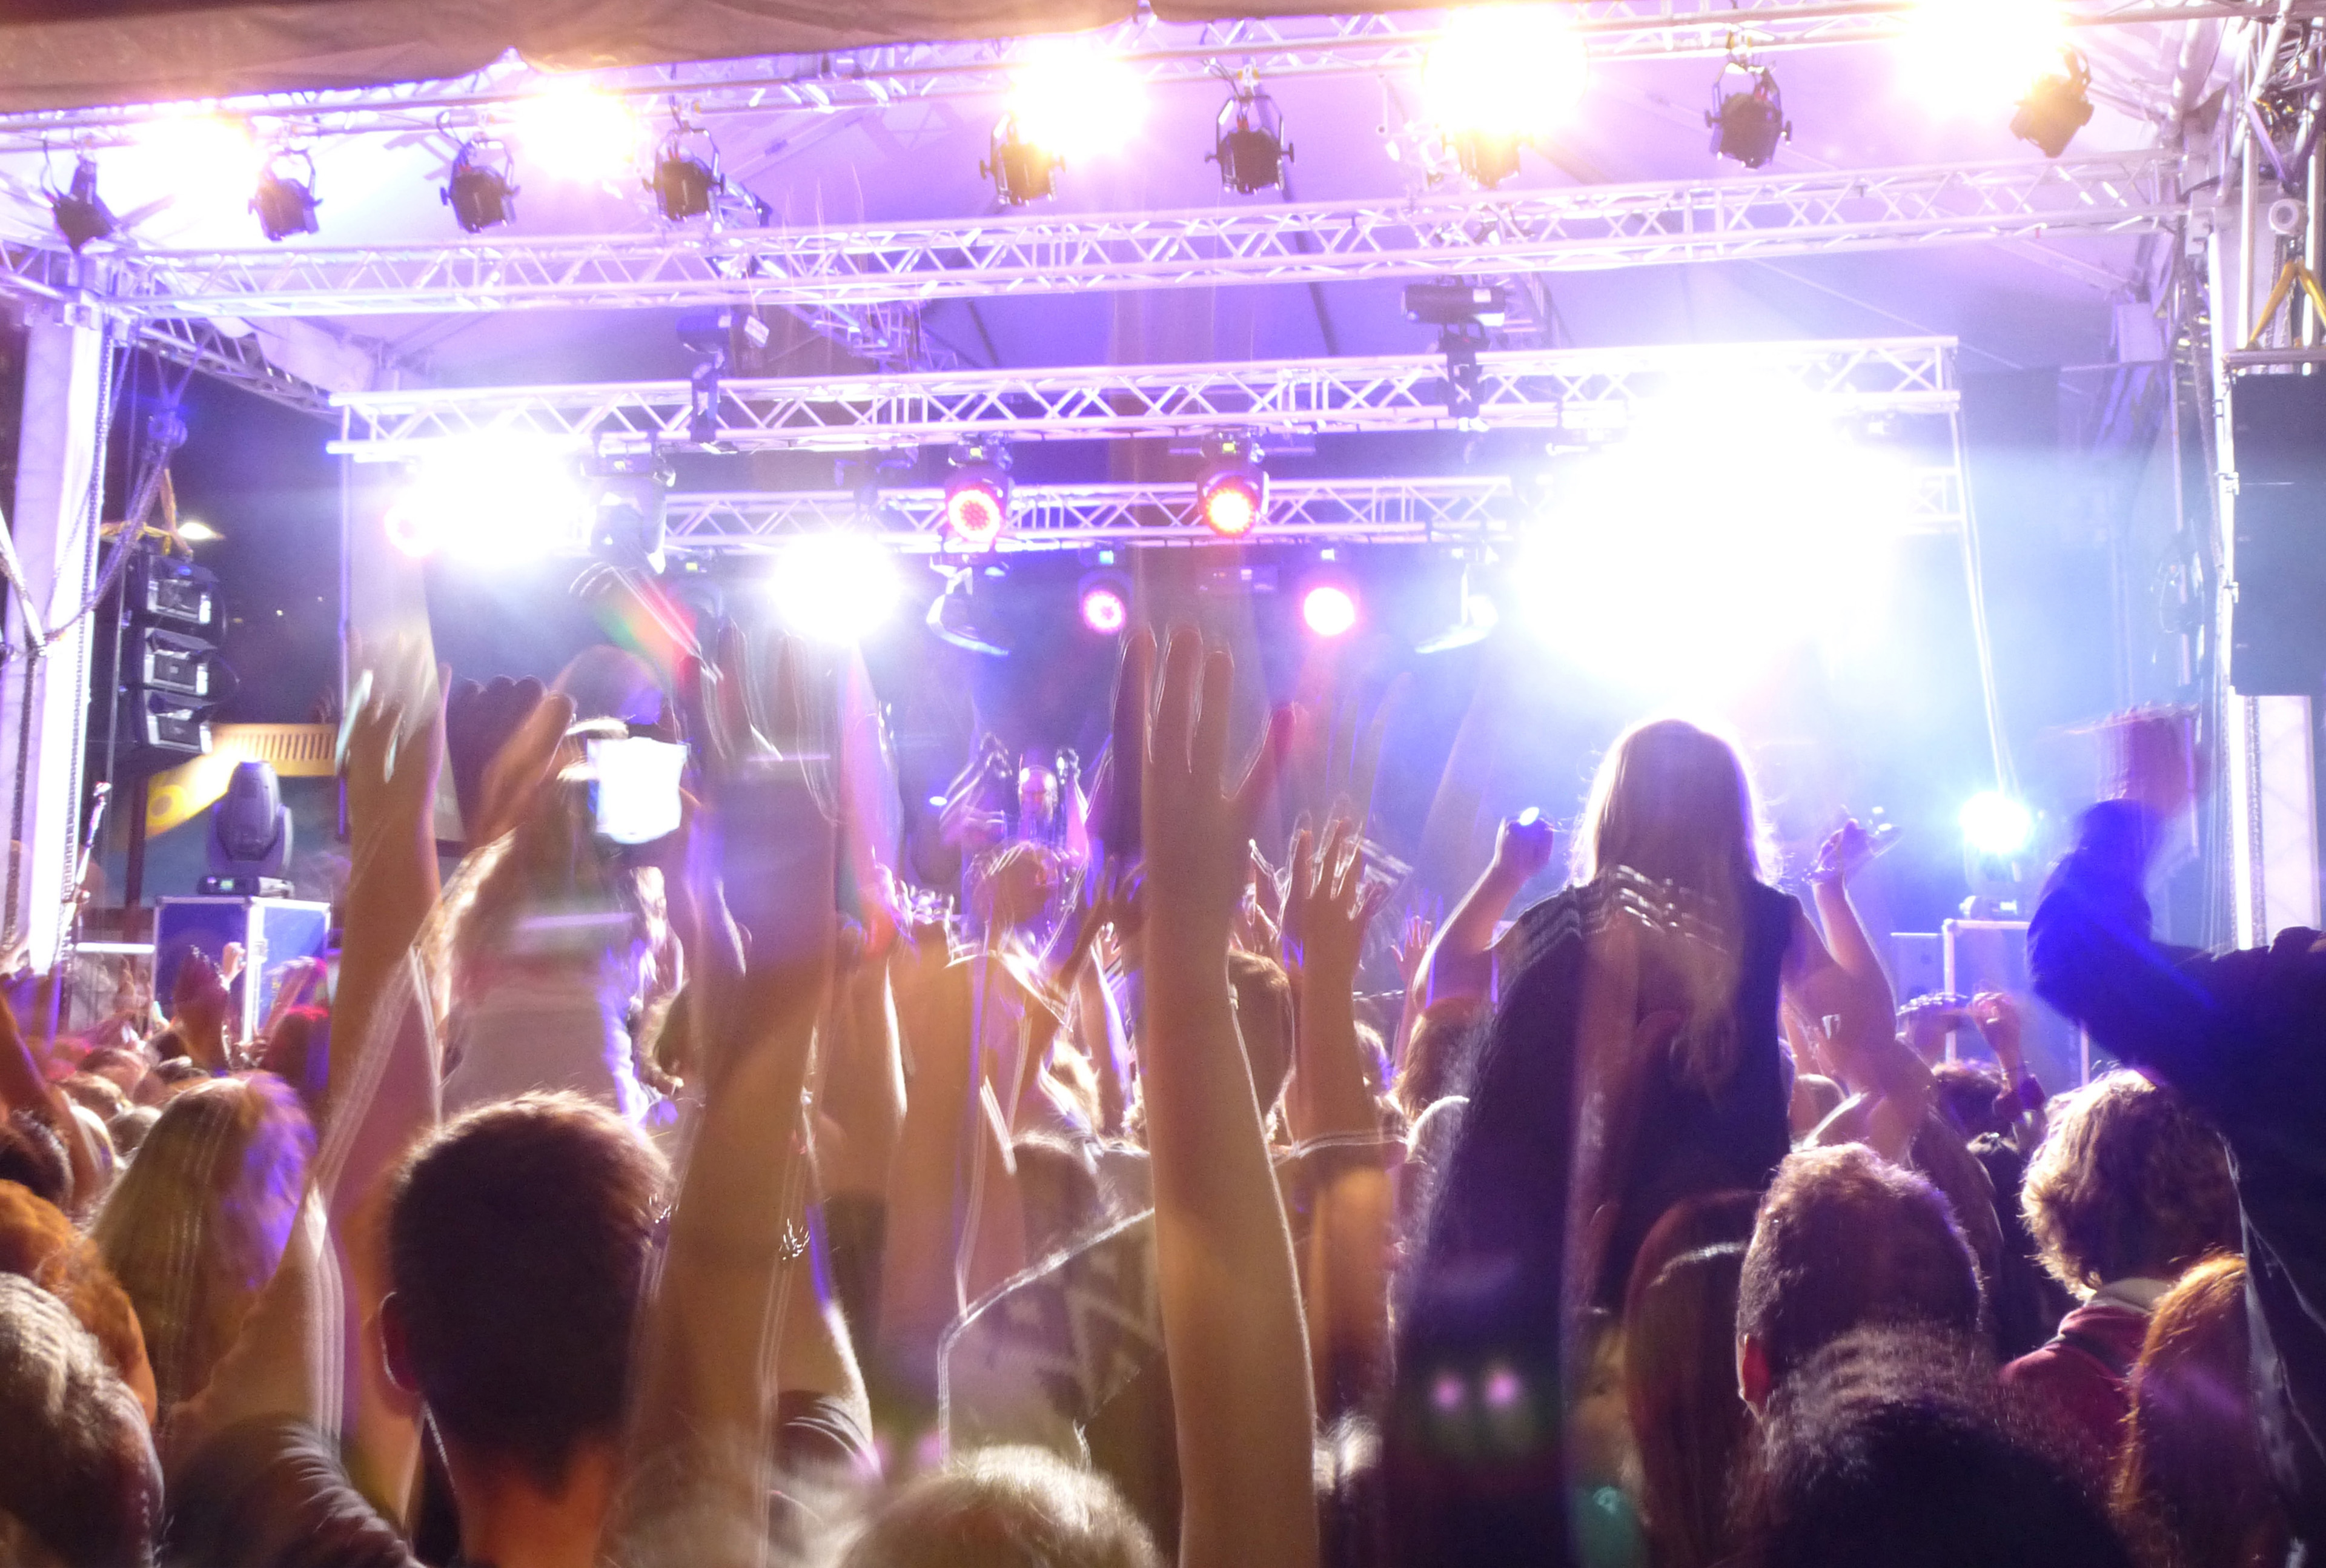 People with raised hands attending a live performance on the stage during an entertaining concert, rear view